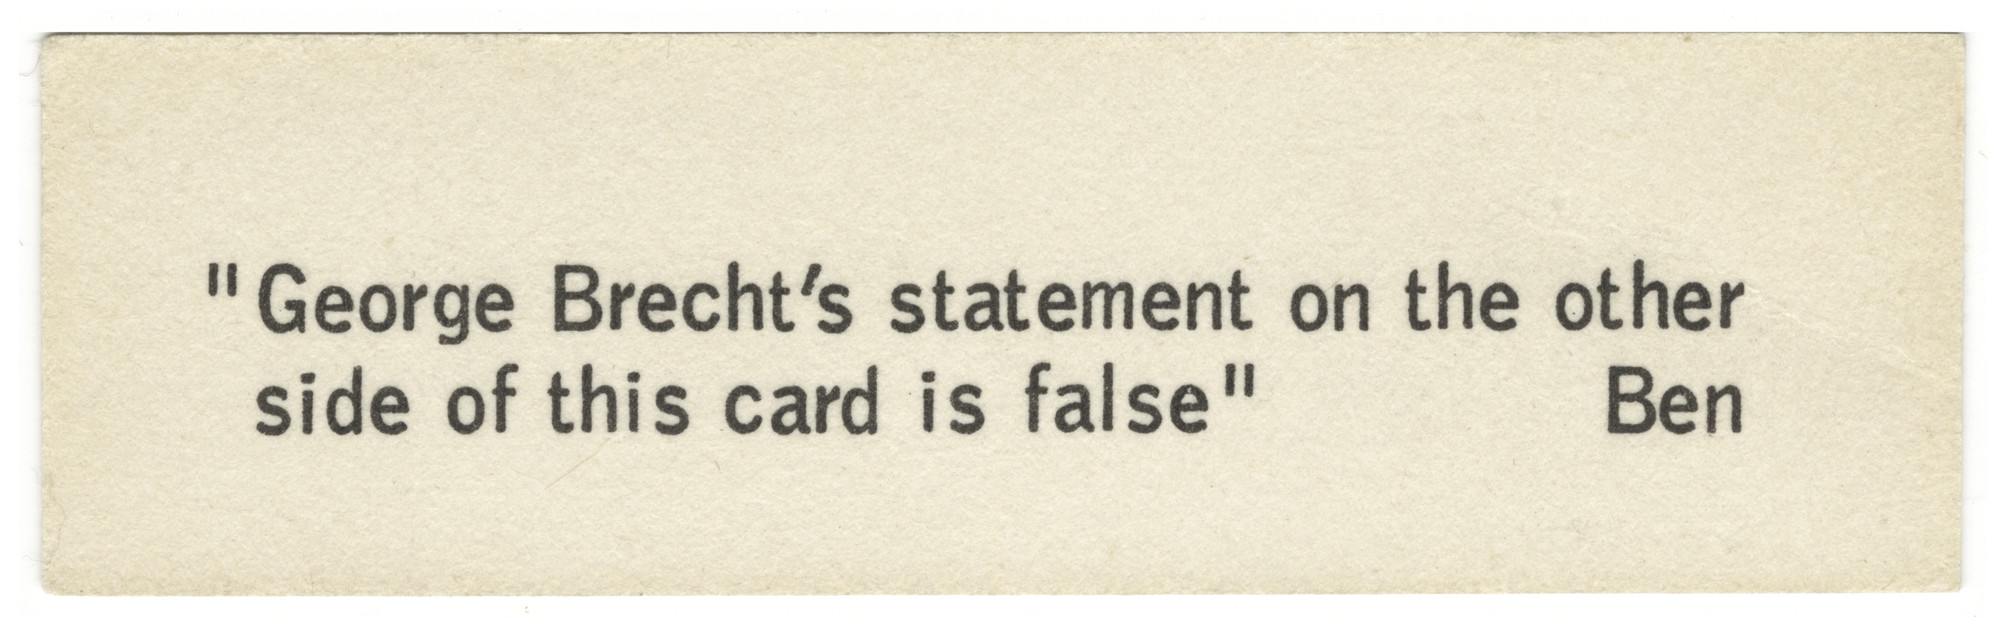 George Brecht, Ben Vautier. Statement on the Other Side of This Card from Flux Year Box 2. c. 1968